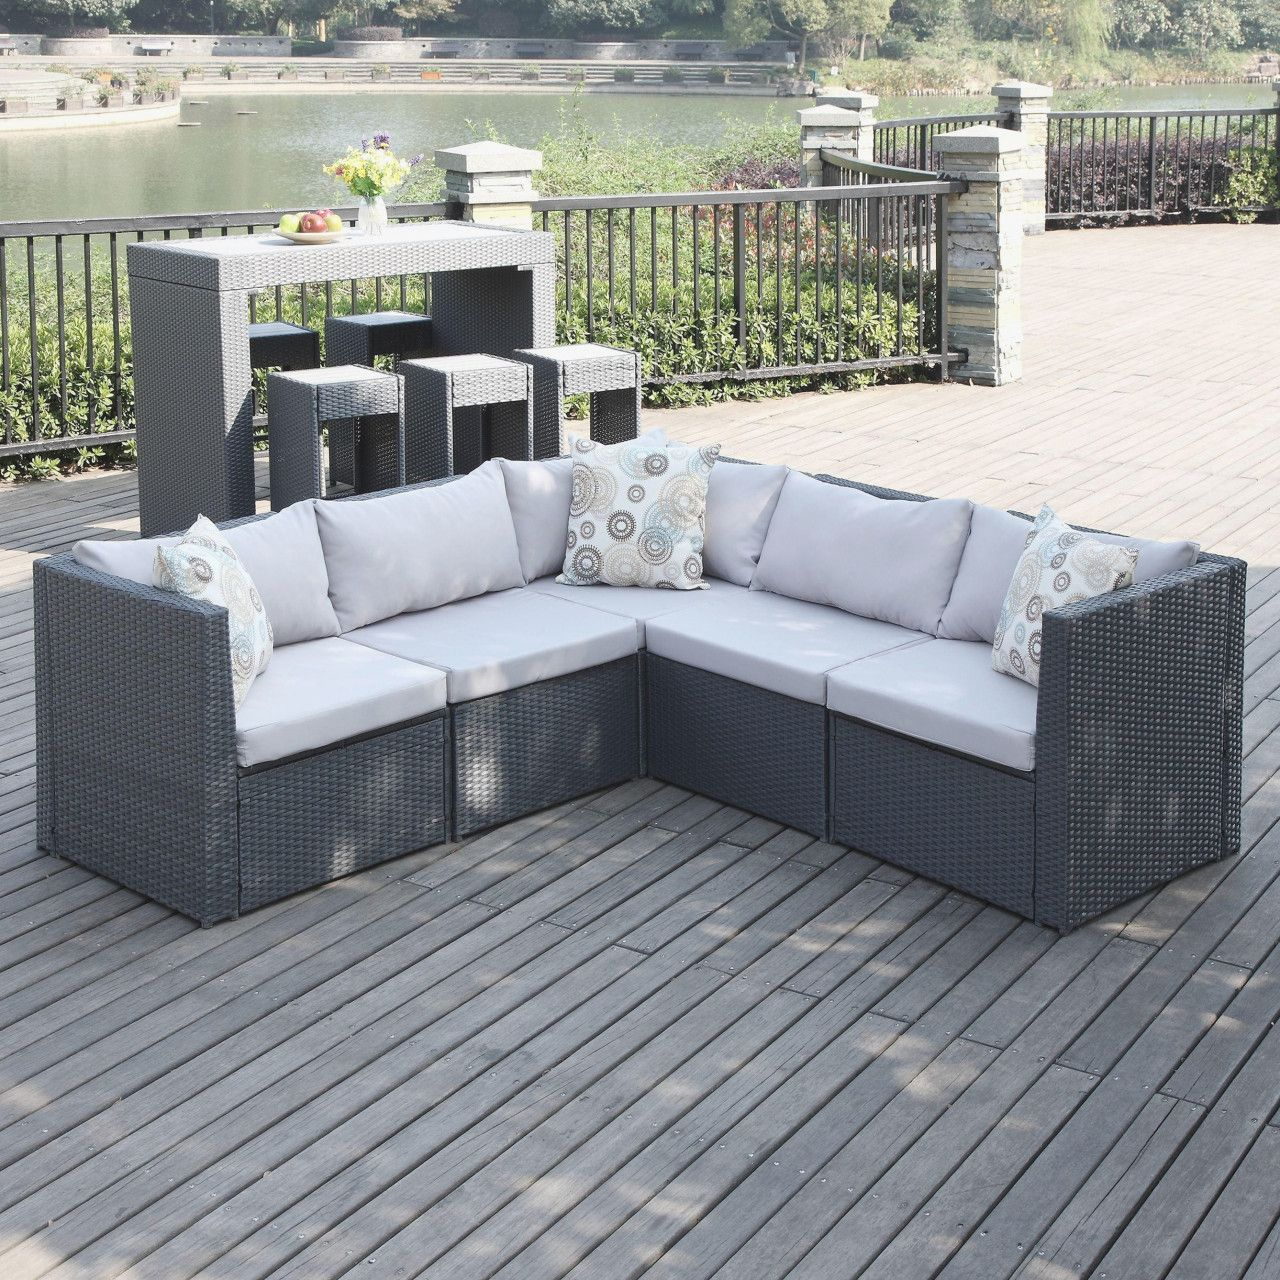 20 Luxury Lift Top Coffee Table With Storage 2020 Patio Sectional Patio Sofa Unique Patio Furniture